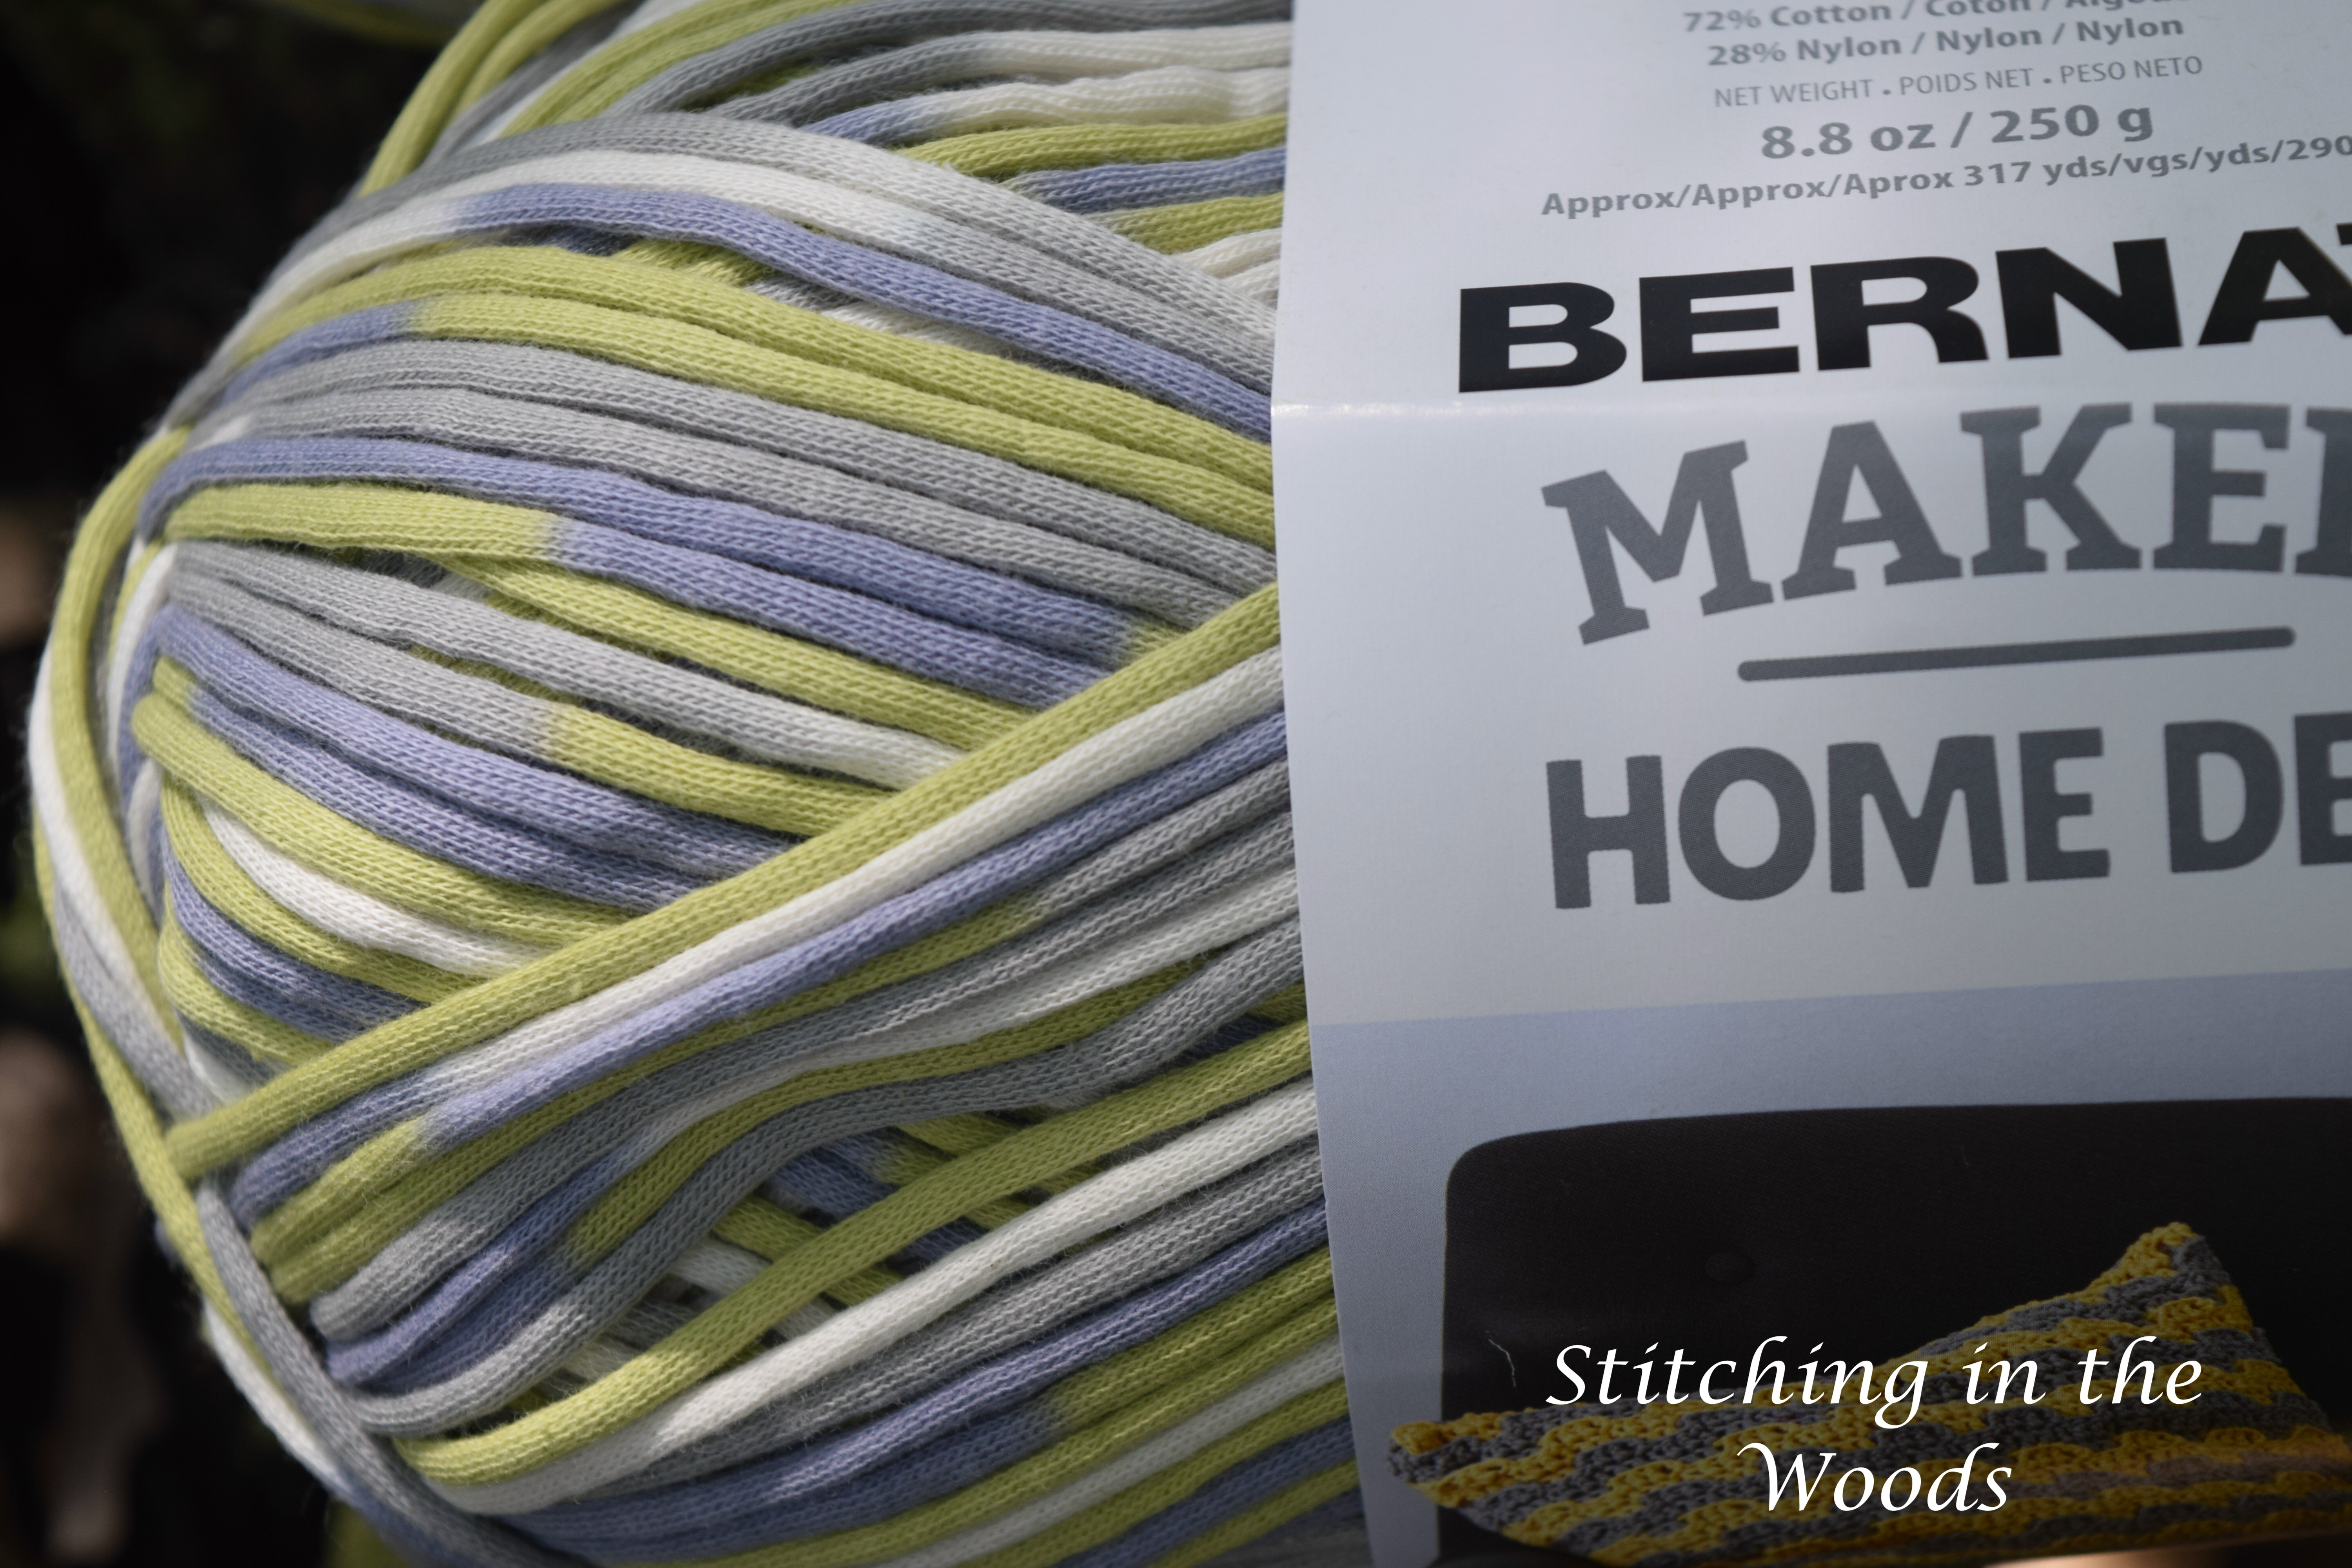 Yarn Review Bernat Maker Home Dec Stitching In The Woods